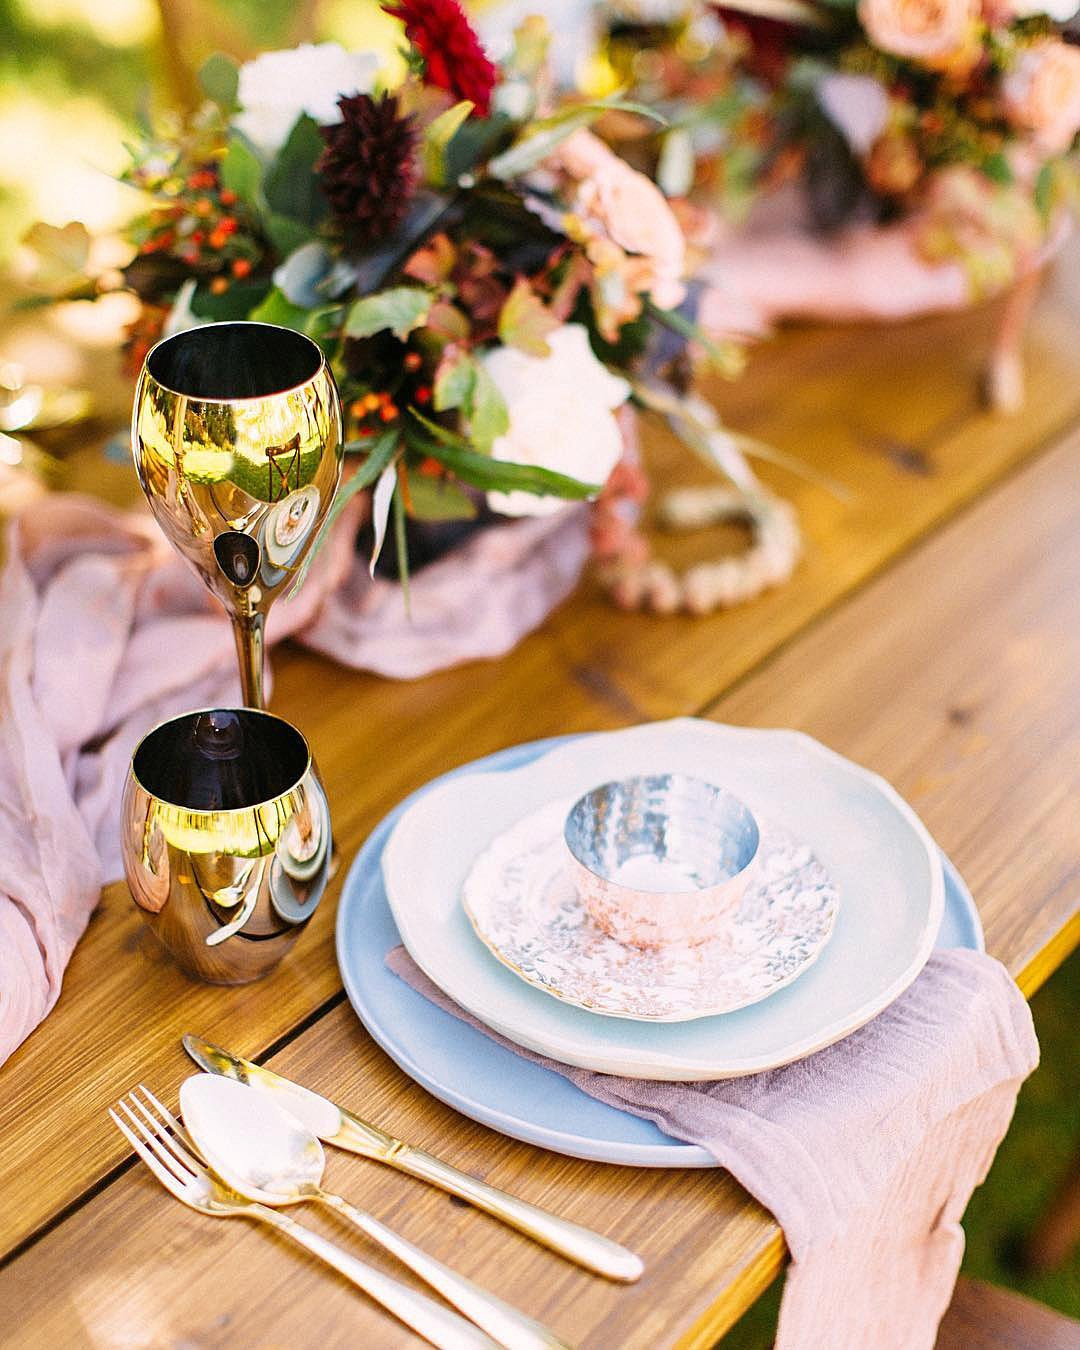 wedding colors Rose Quartz Dusty Blue Light Pink Cream color schemes wedding table setting decor